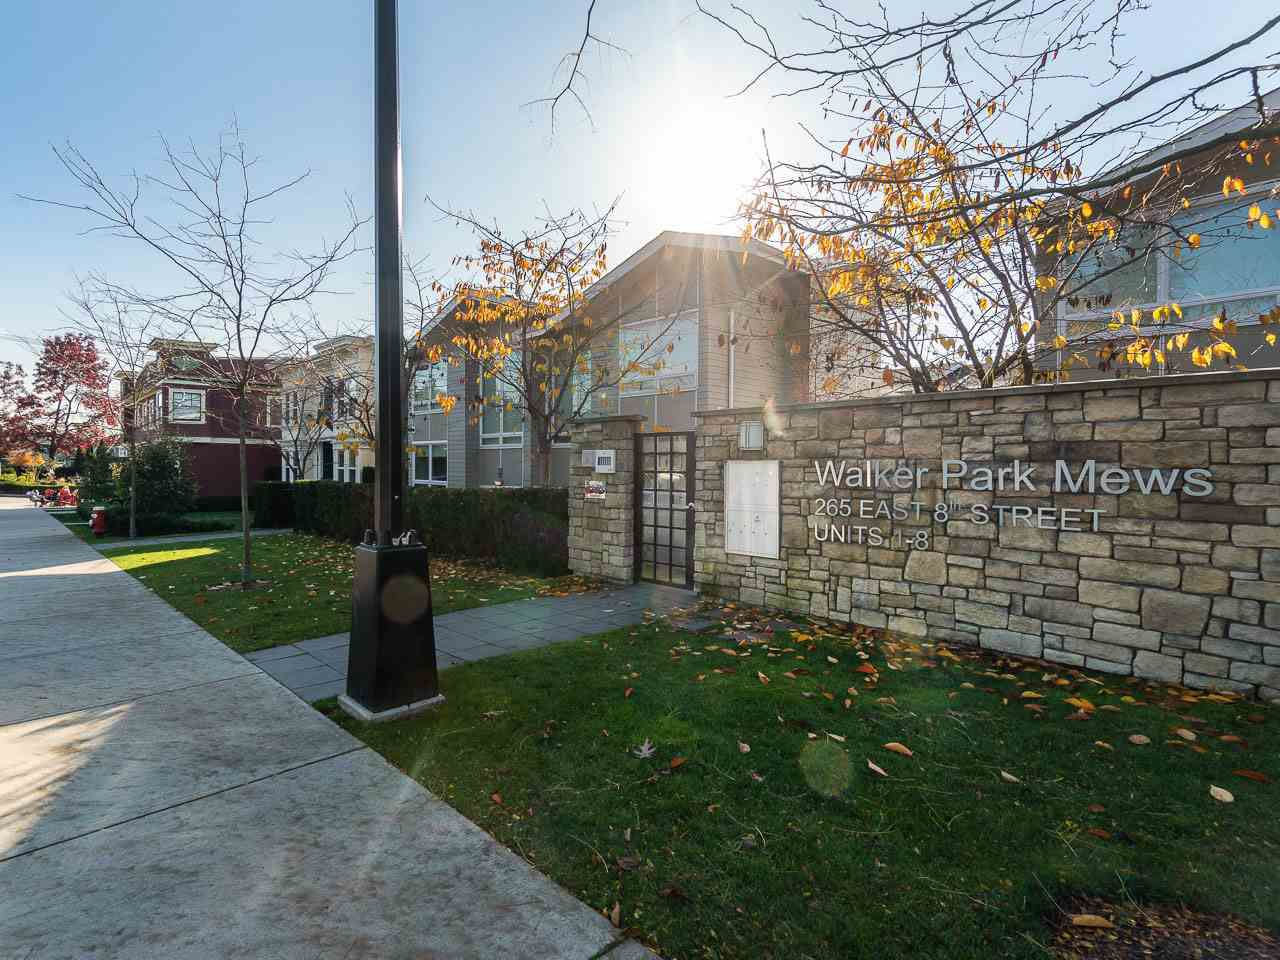 """Main Photo: 7 265 E 8TH Street in North Vancouver: Central Lonsdale Townhouse for sale in """"Walker Park Mews"""" : MLS®# R2322419"""